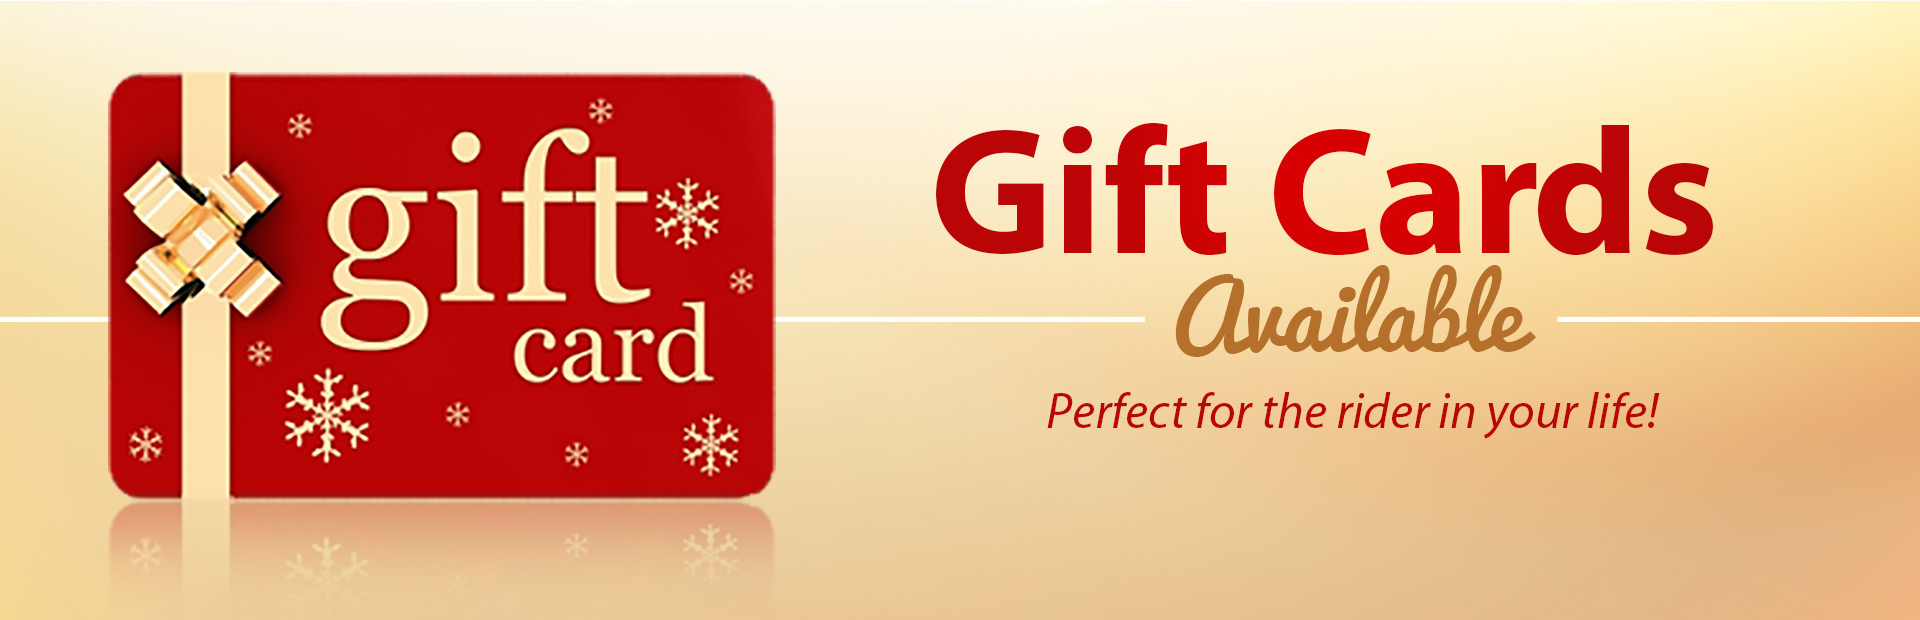 Holiday Gift Cards and Certificates Available